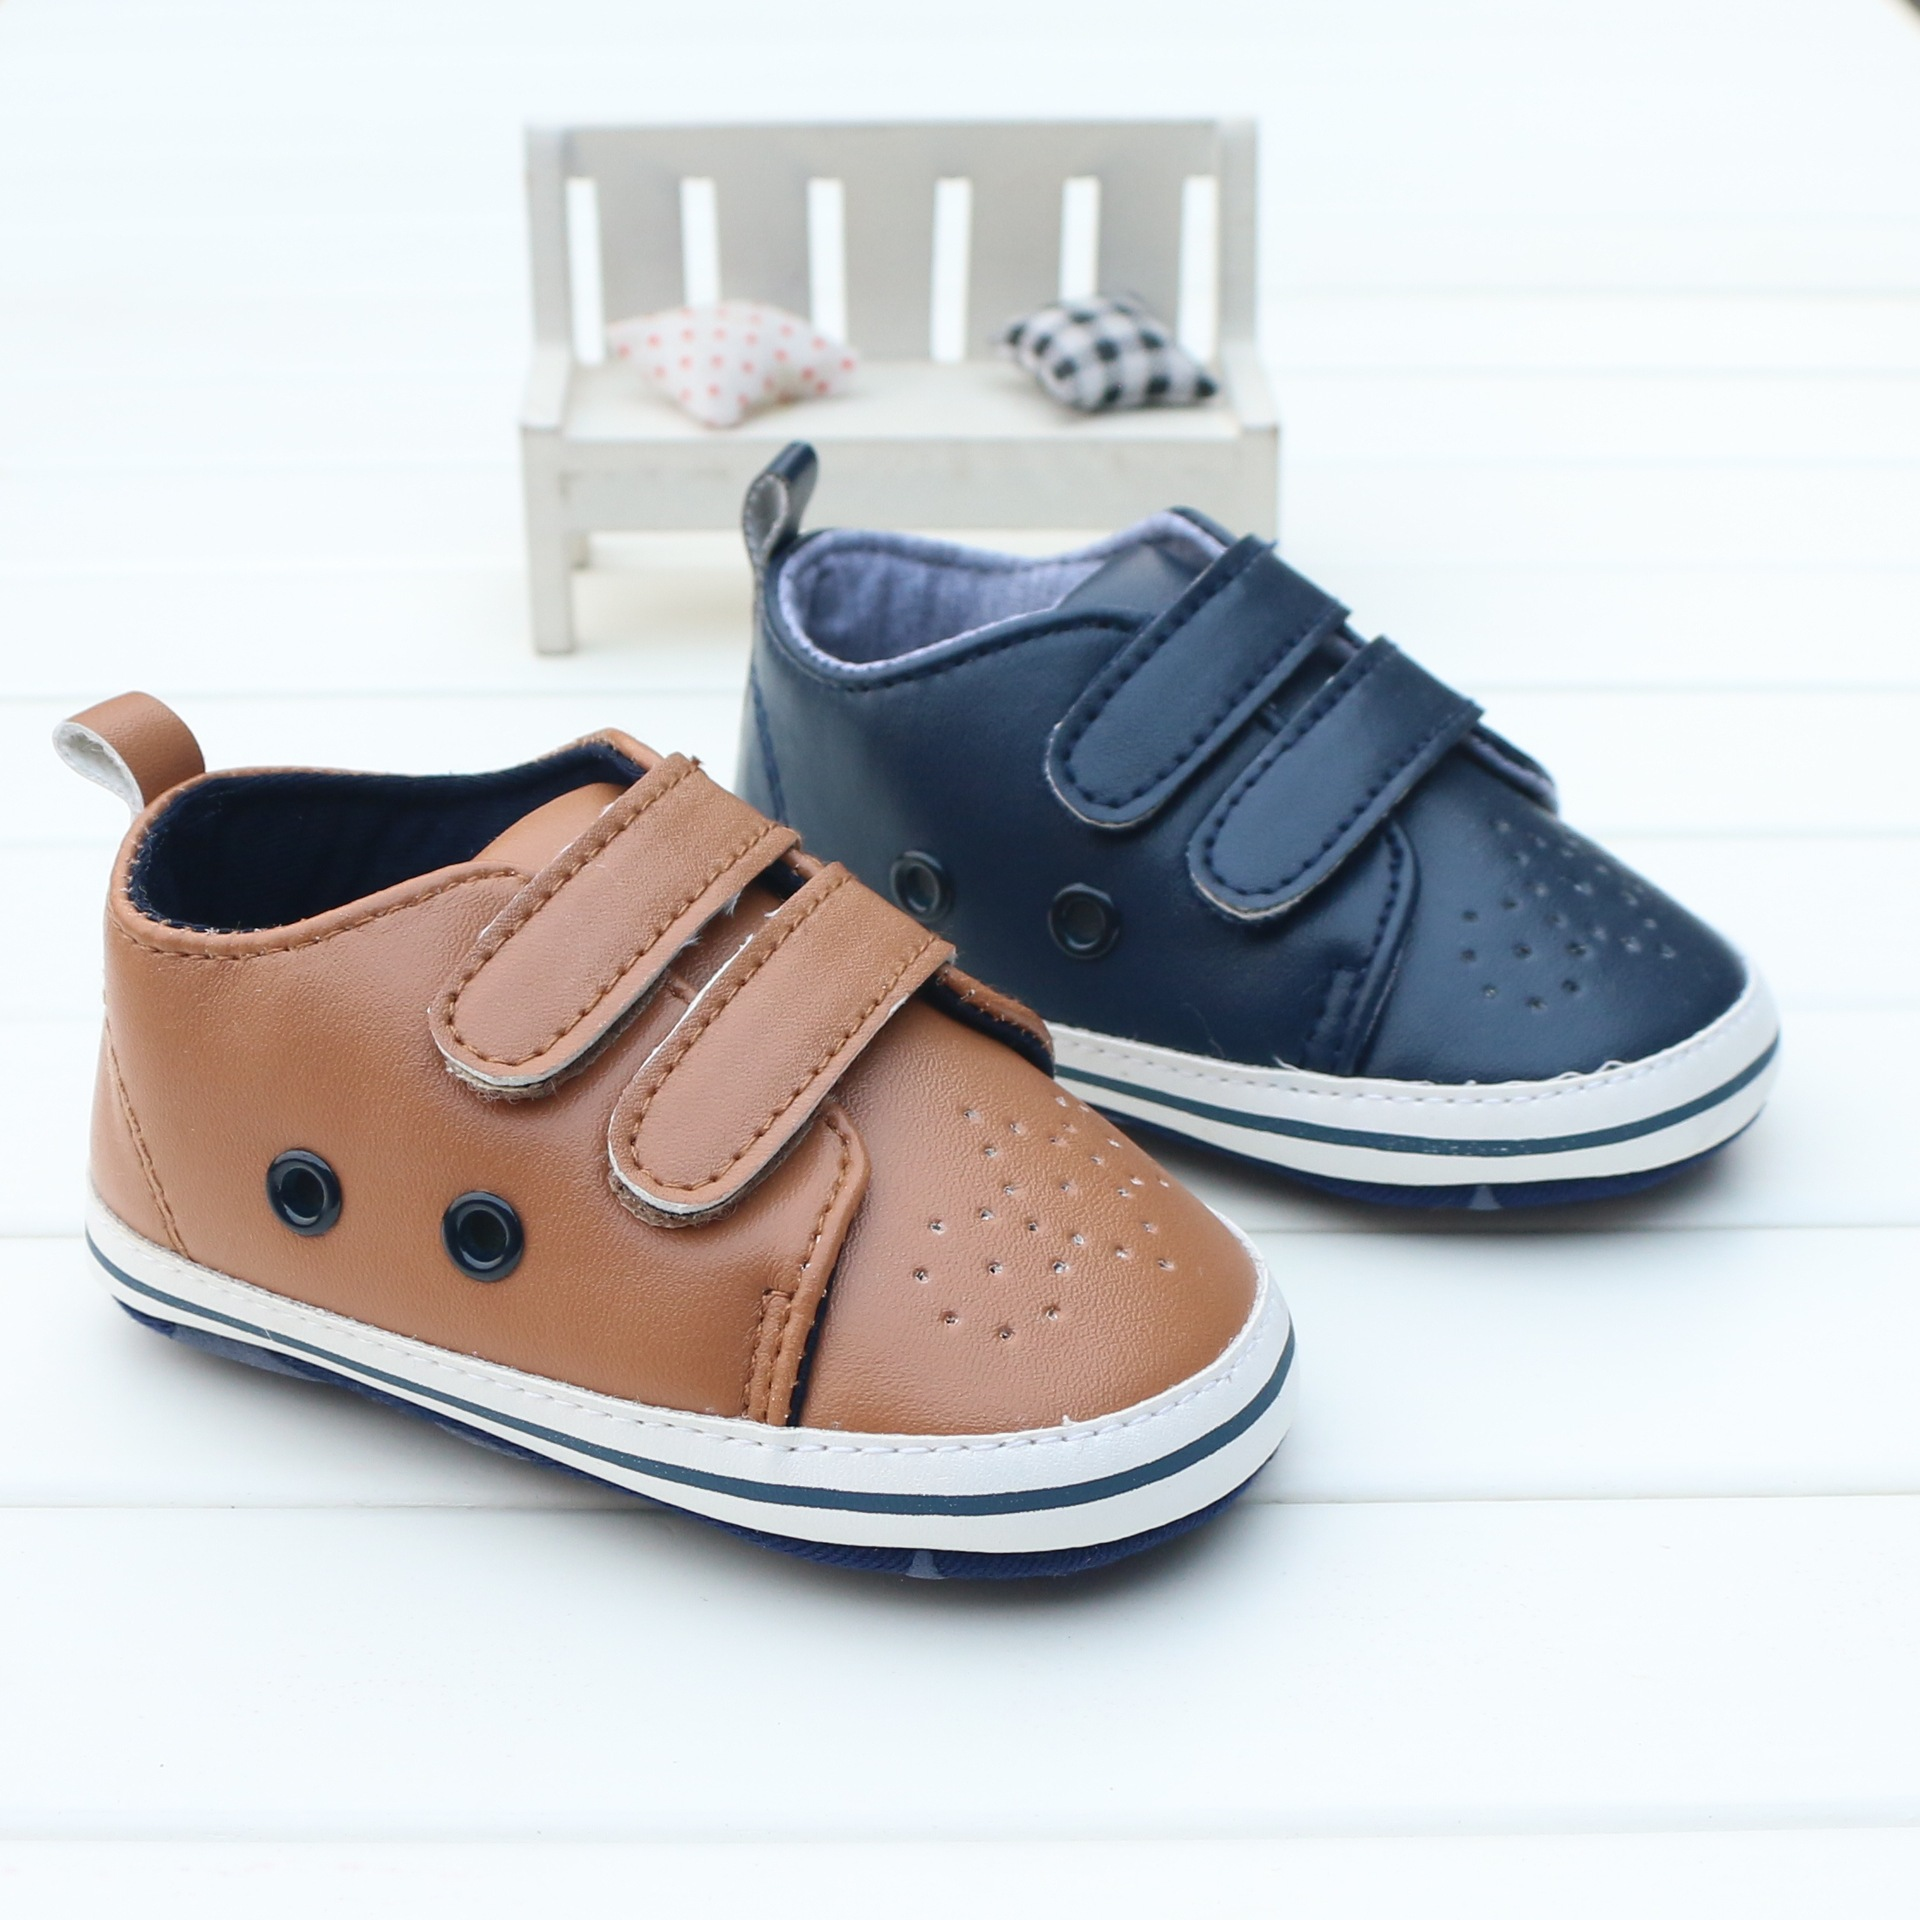 Aliexpress.com : Buy Baby First Walkers Baby Shoes Cute